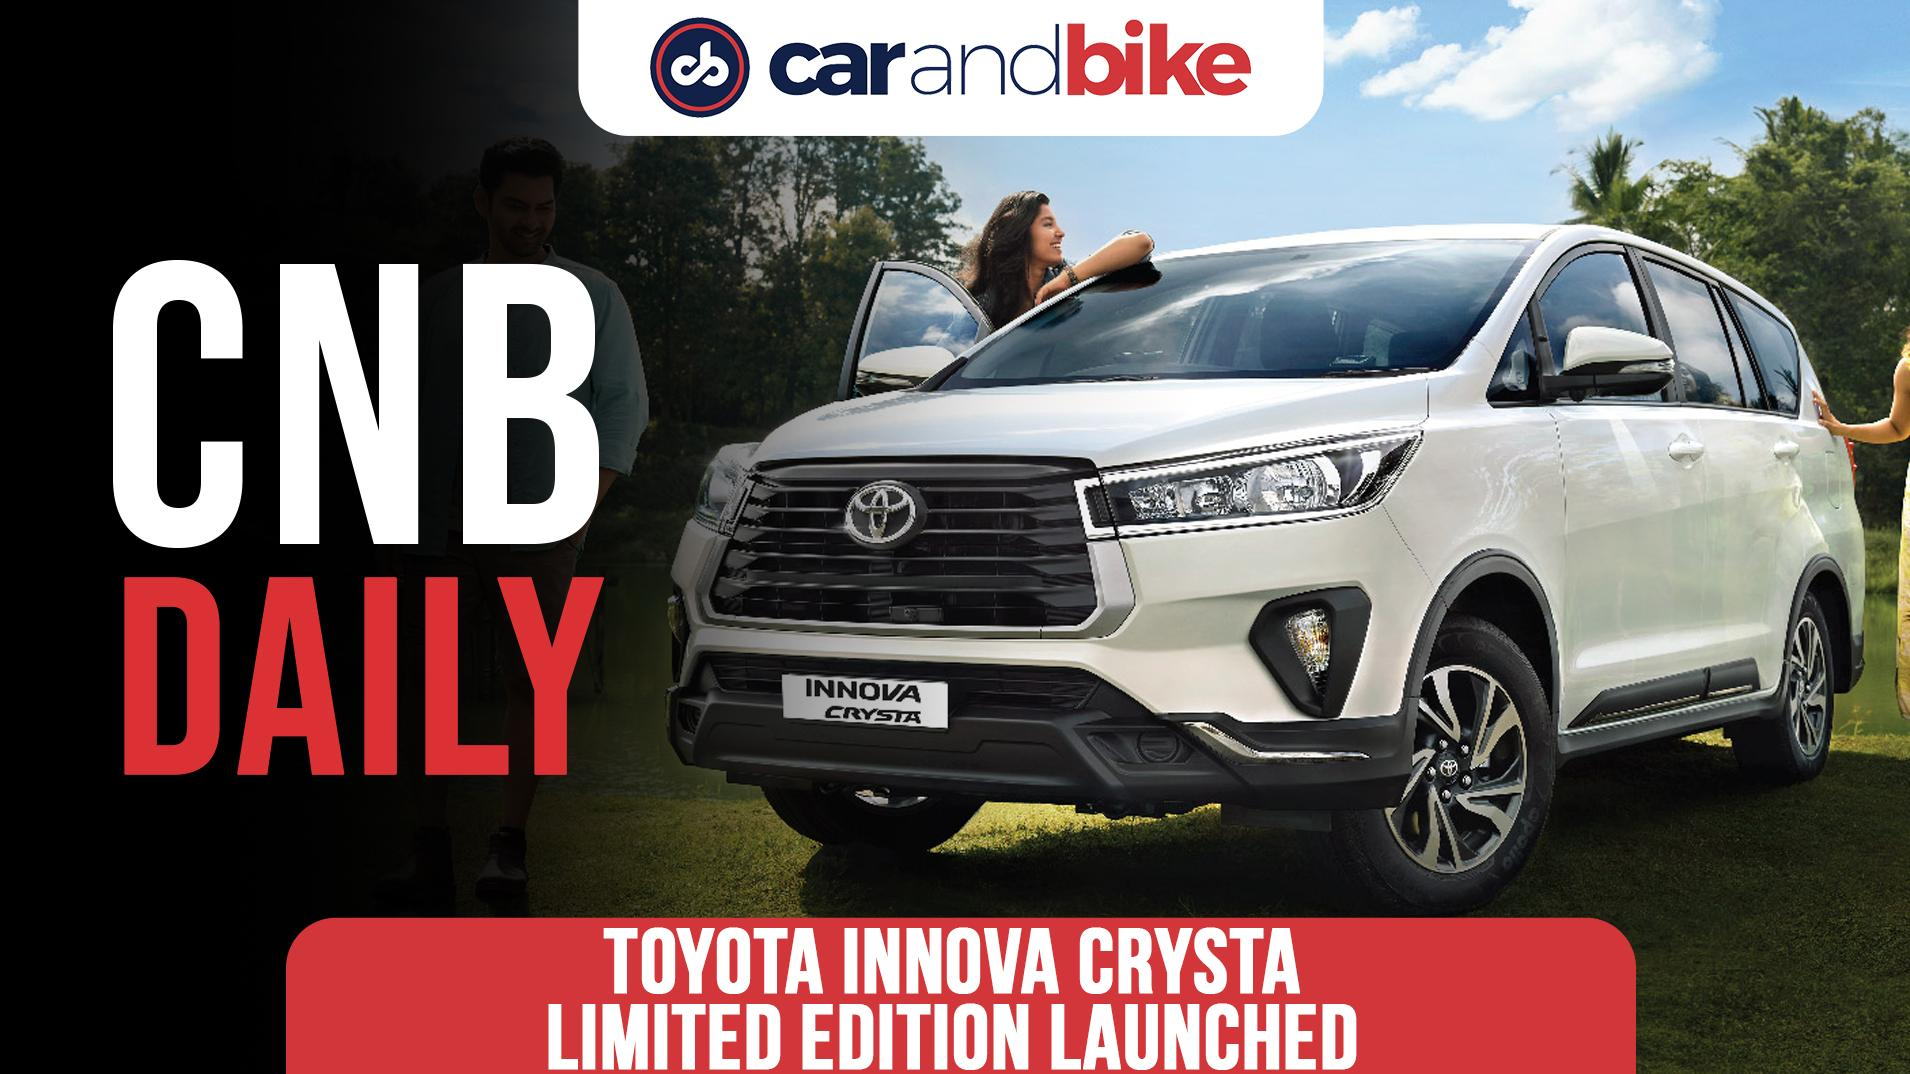 Limited edition Toyota Innova Crysta launched in India